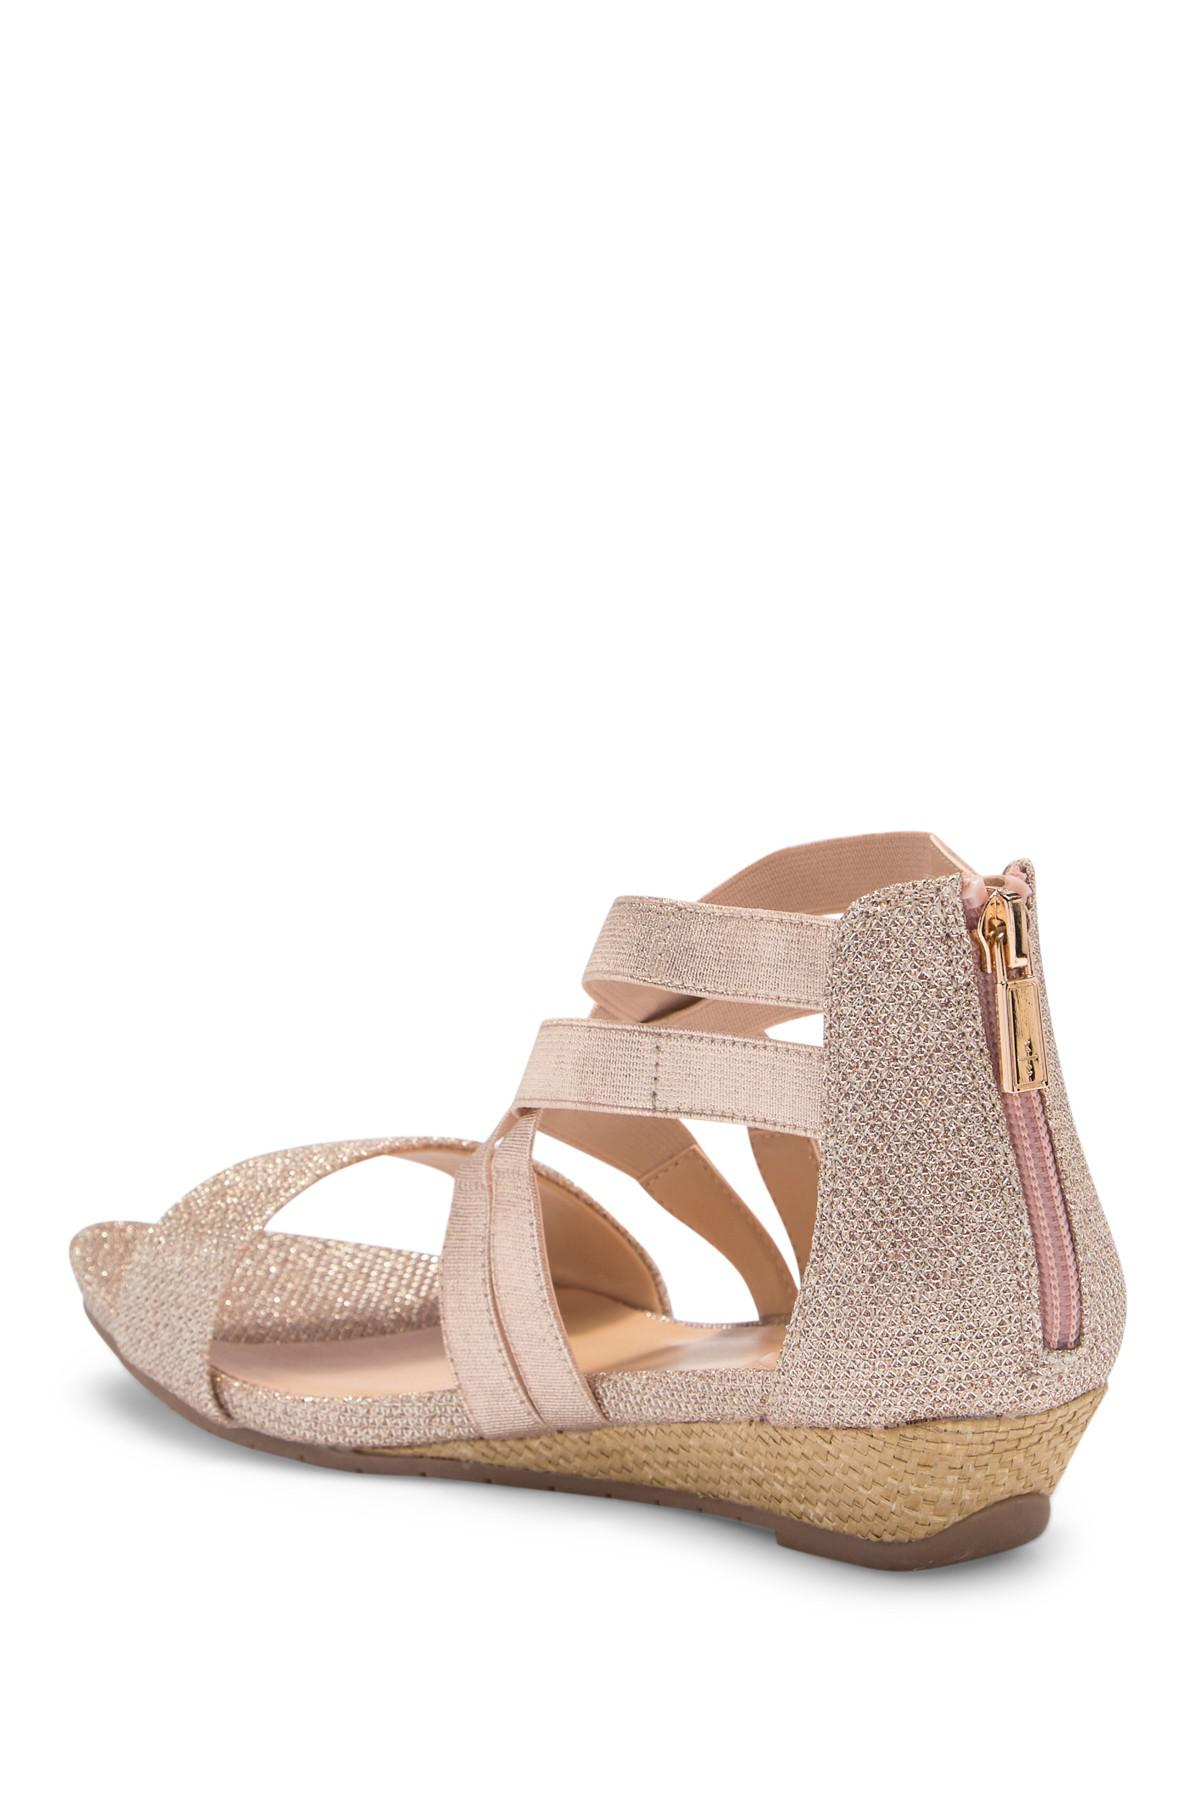 a3a8696faa Lyst - Kenneth Cole Reaction Great Stretch Wedge Sandal